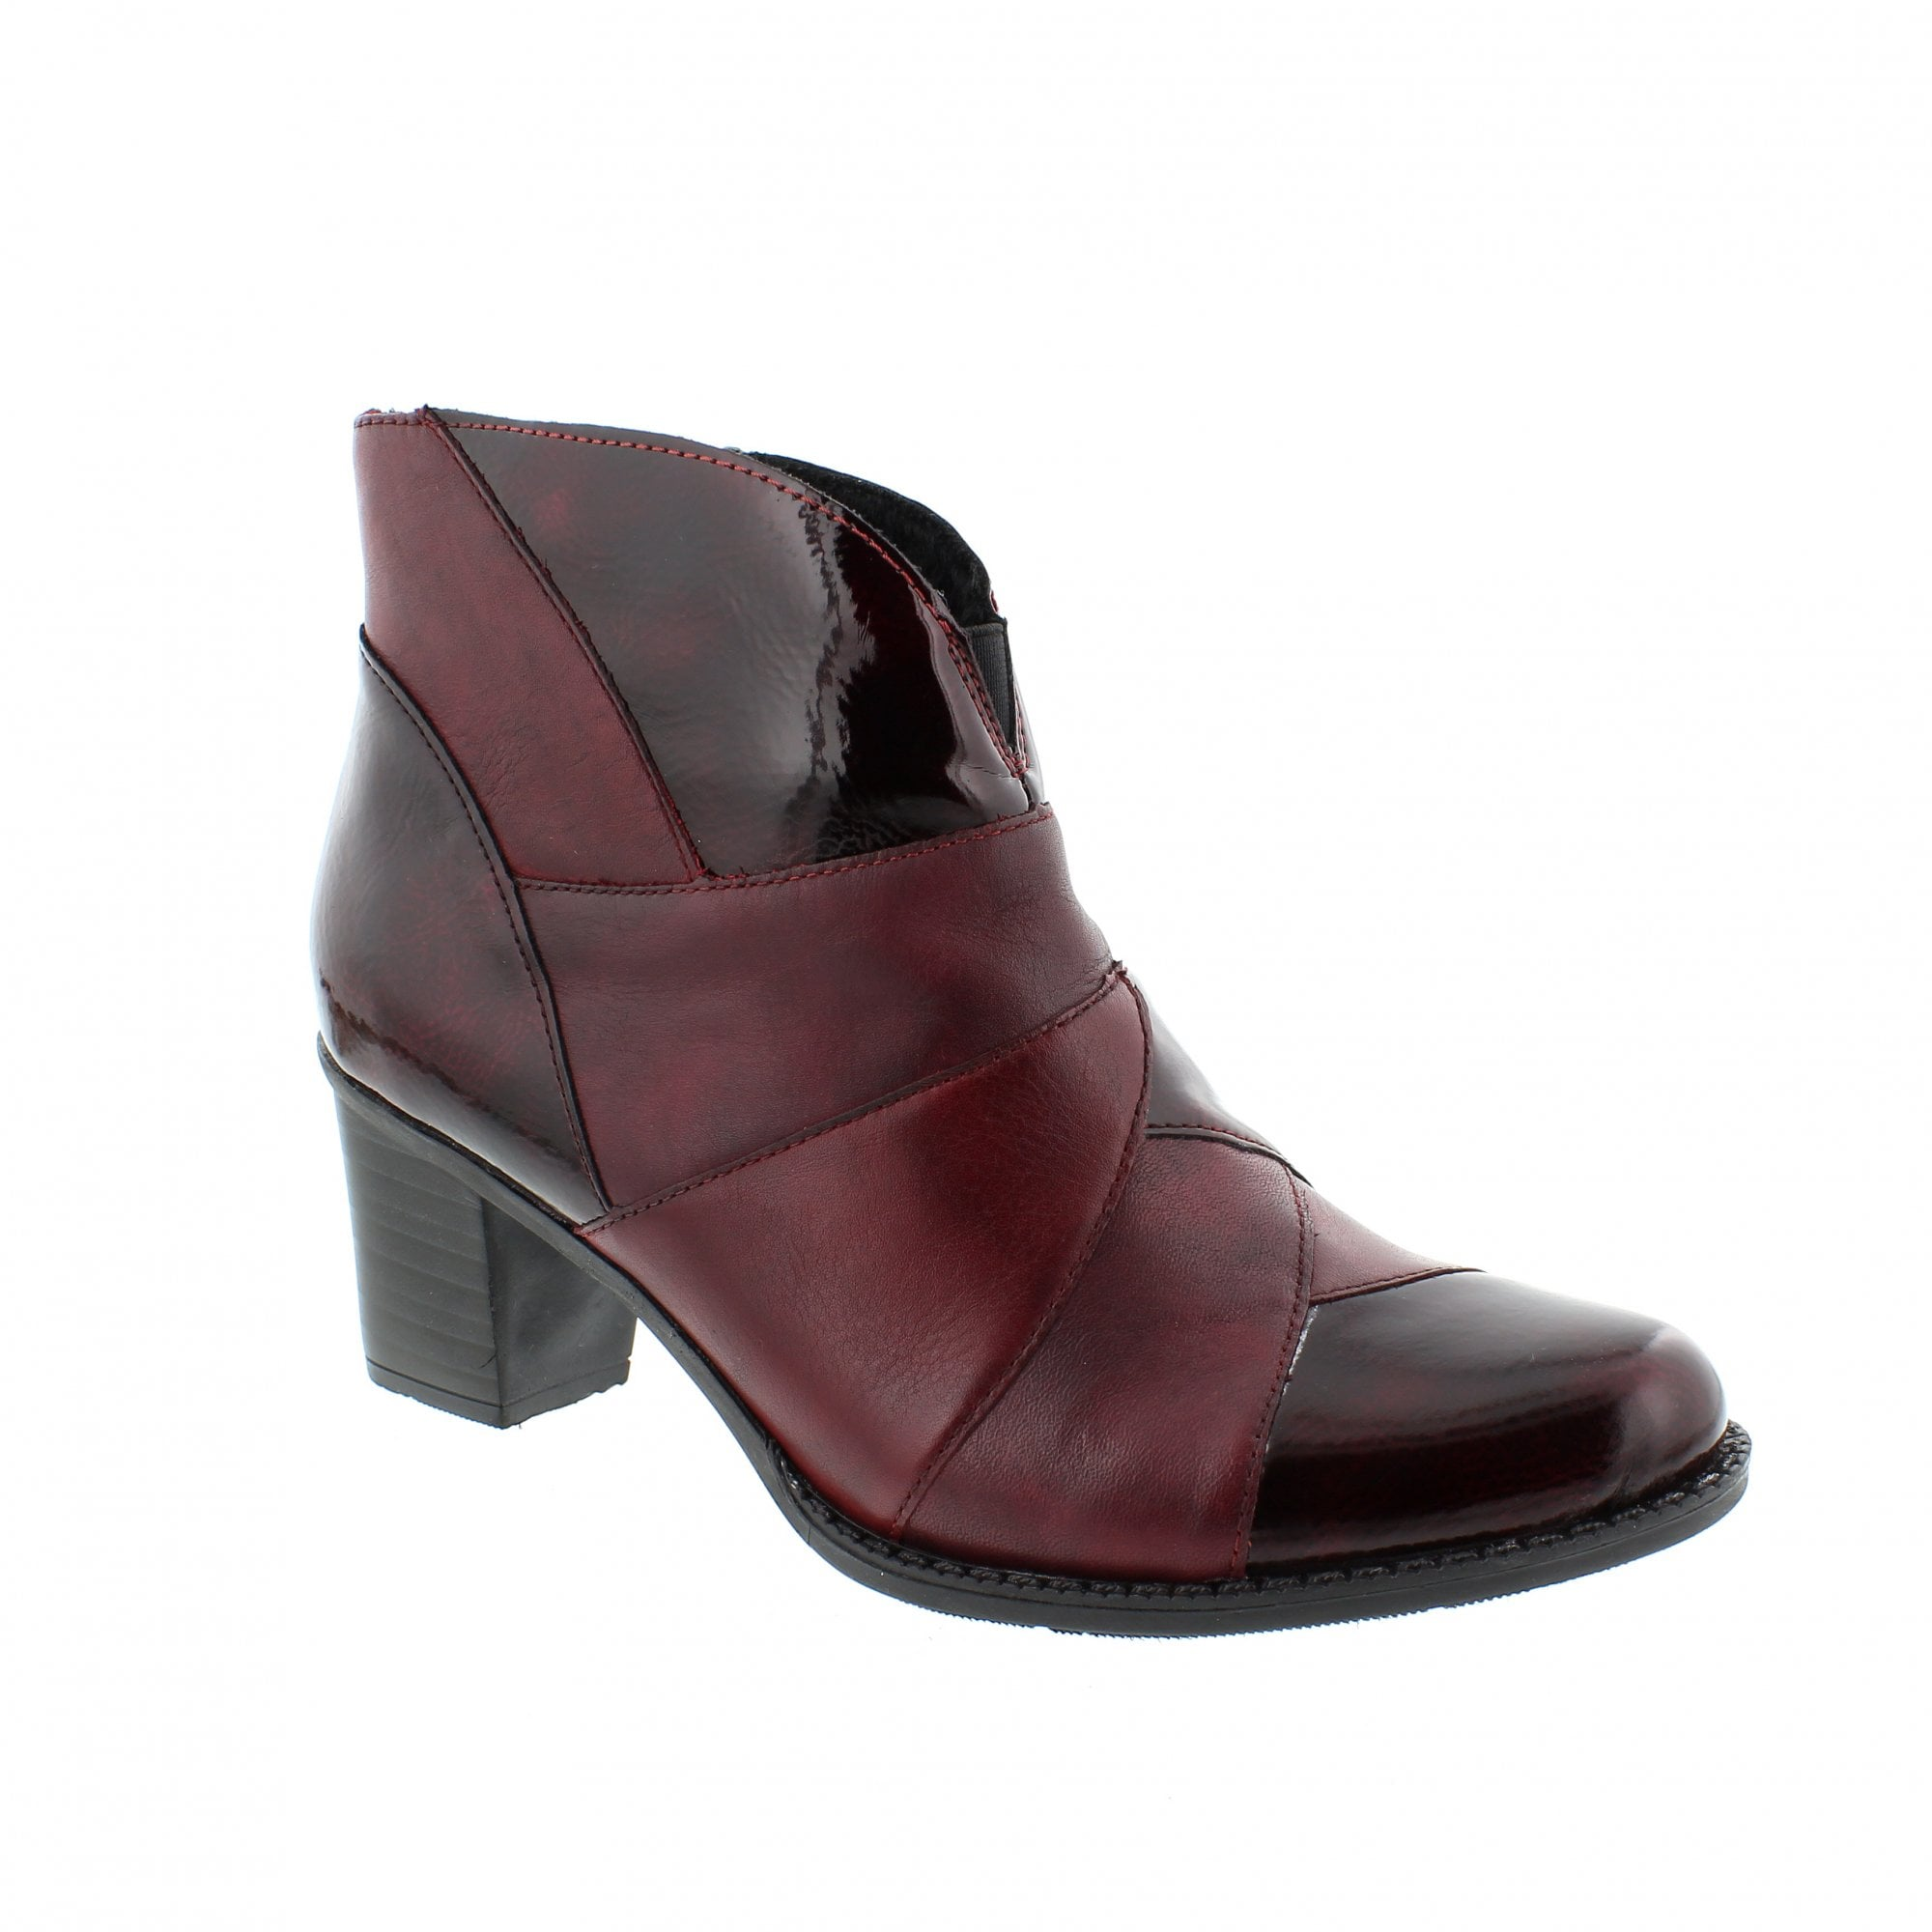 6a8f9318c4 Rieker Z7676-35 Burgundy/Red Womens Ankle Boots | Rogerson Shoes